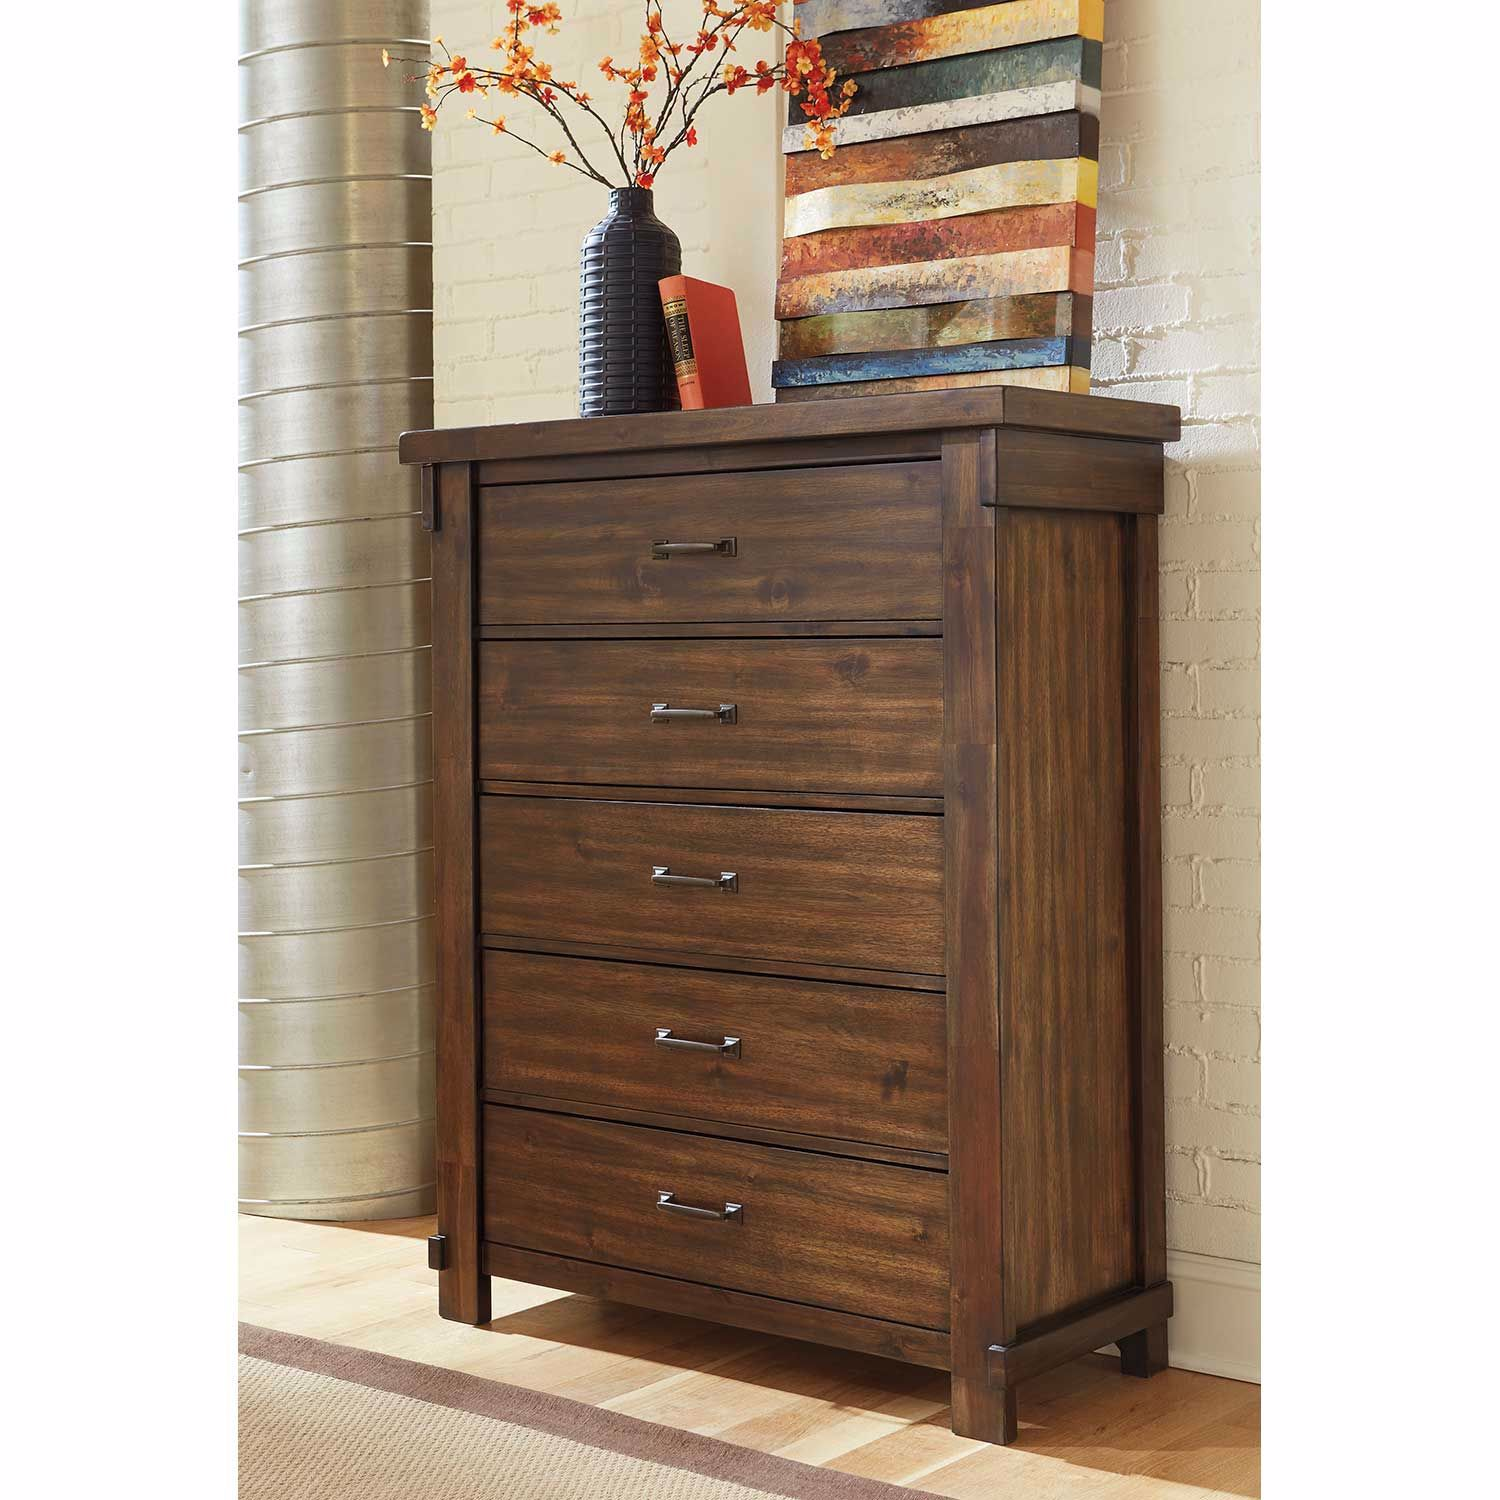 Picture of Lakeleigh 5 Drawer Chest